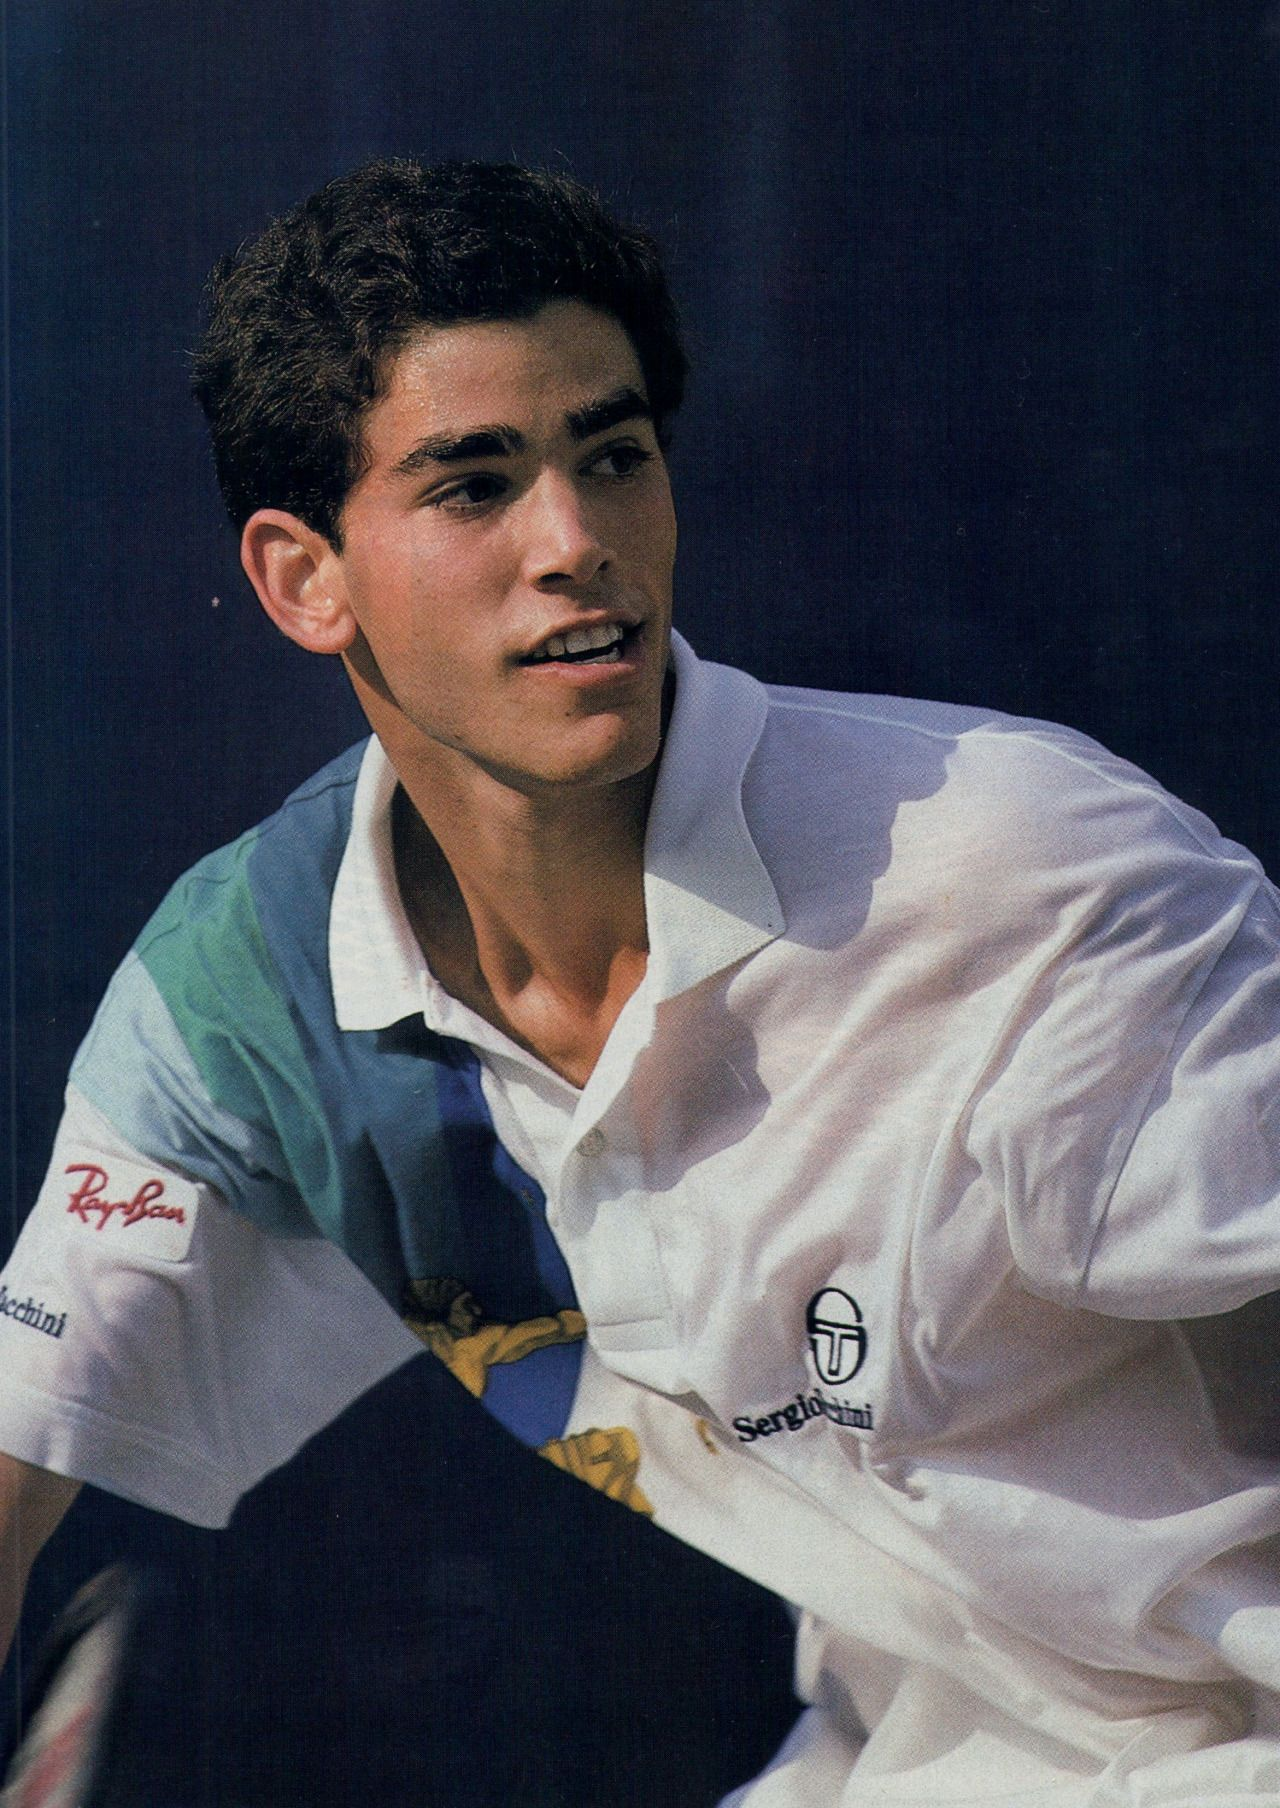 Pete Sampras in 1990 at the age of 19 He s wearing a Sergio